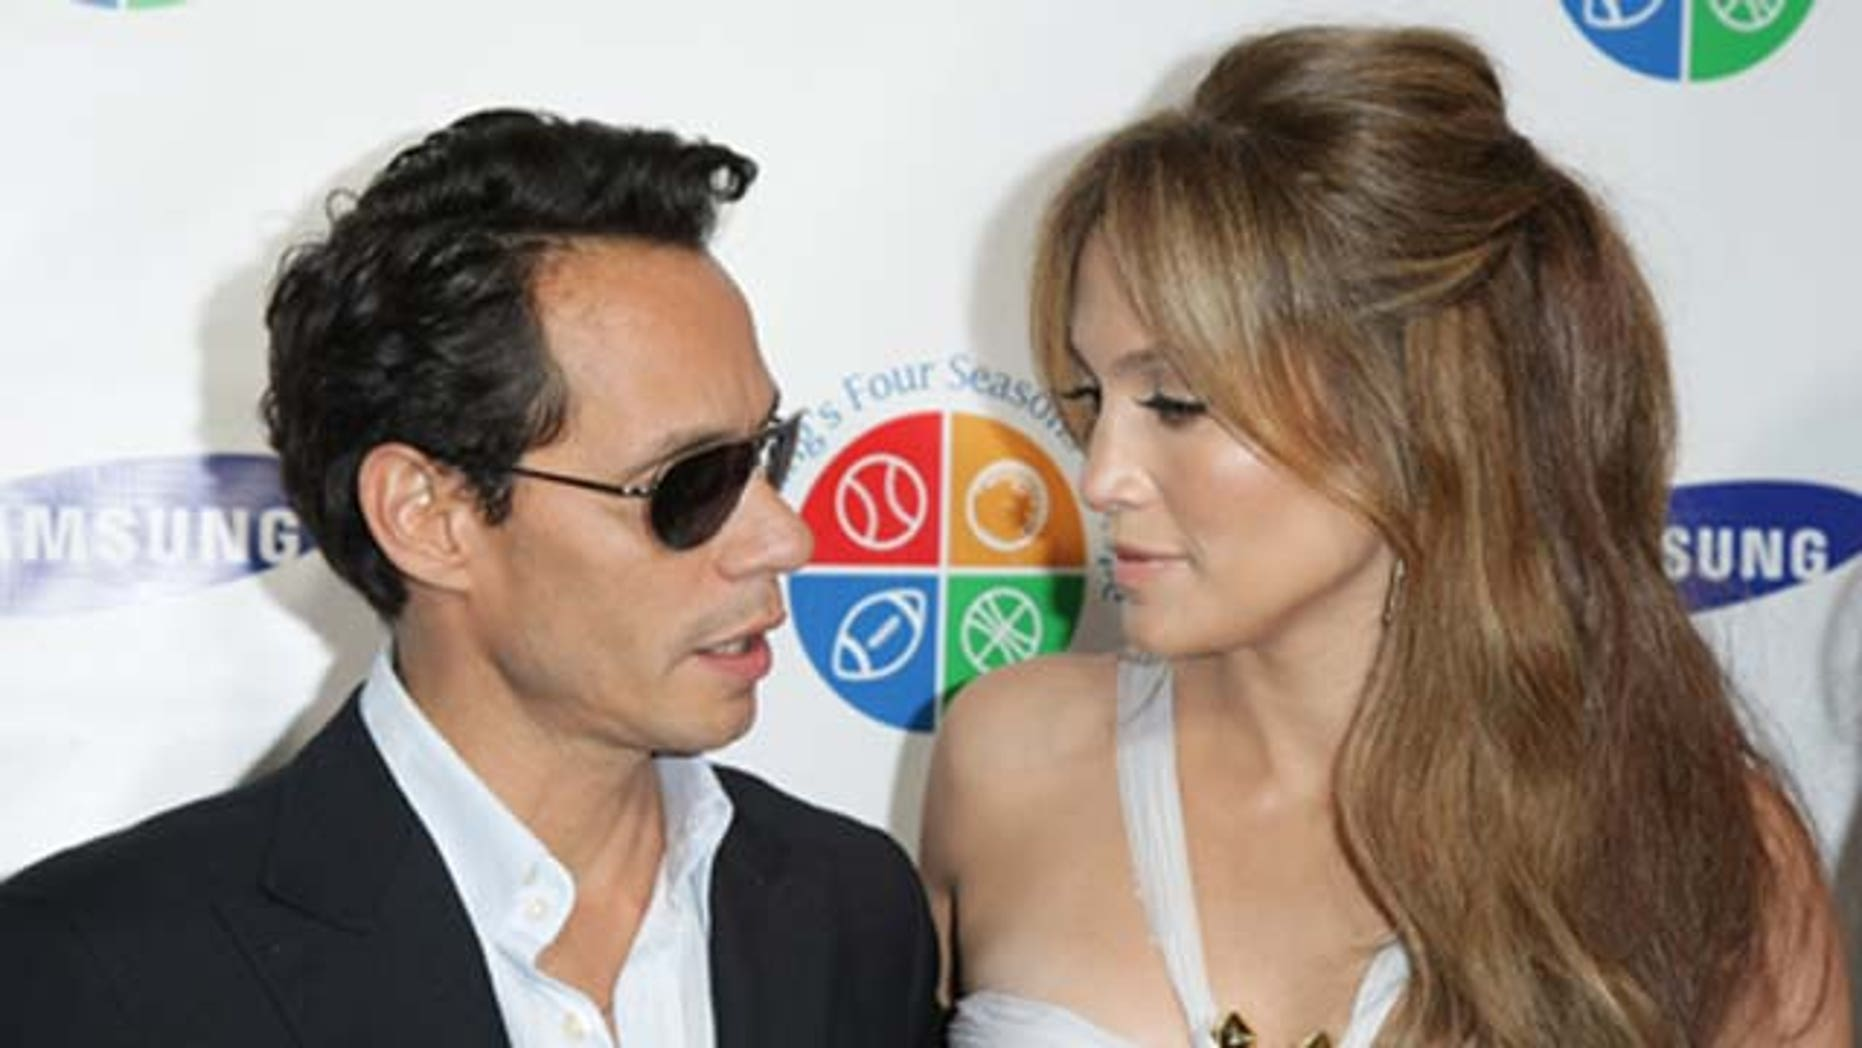 June 15, 2010: Marc Anthony and Jennifer Lopez attend Samsung's 9th Annual Four Seasons of Hope Gala at Cipriani Wall Street in New York City.